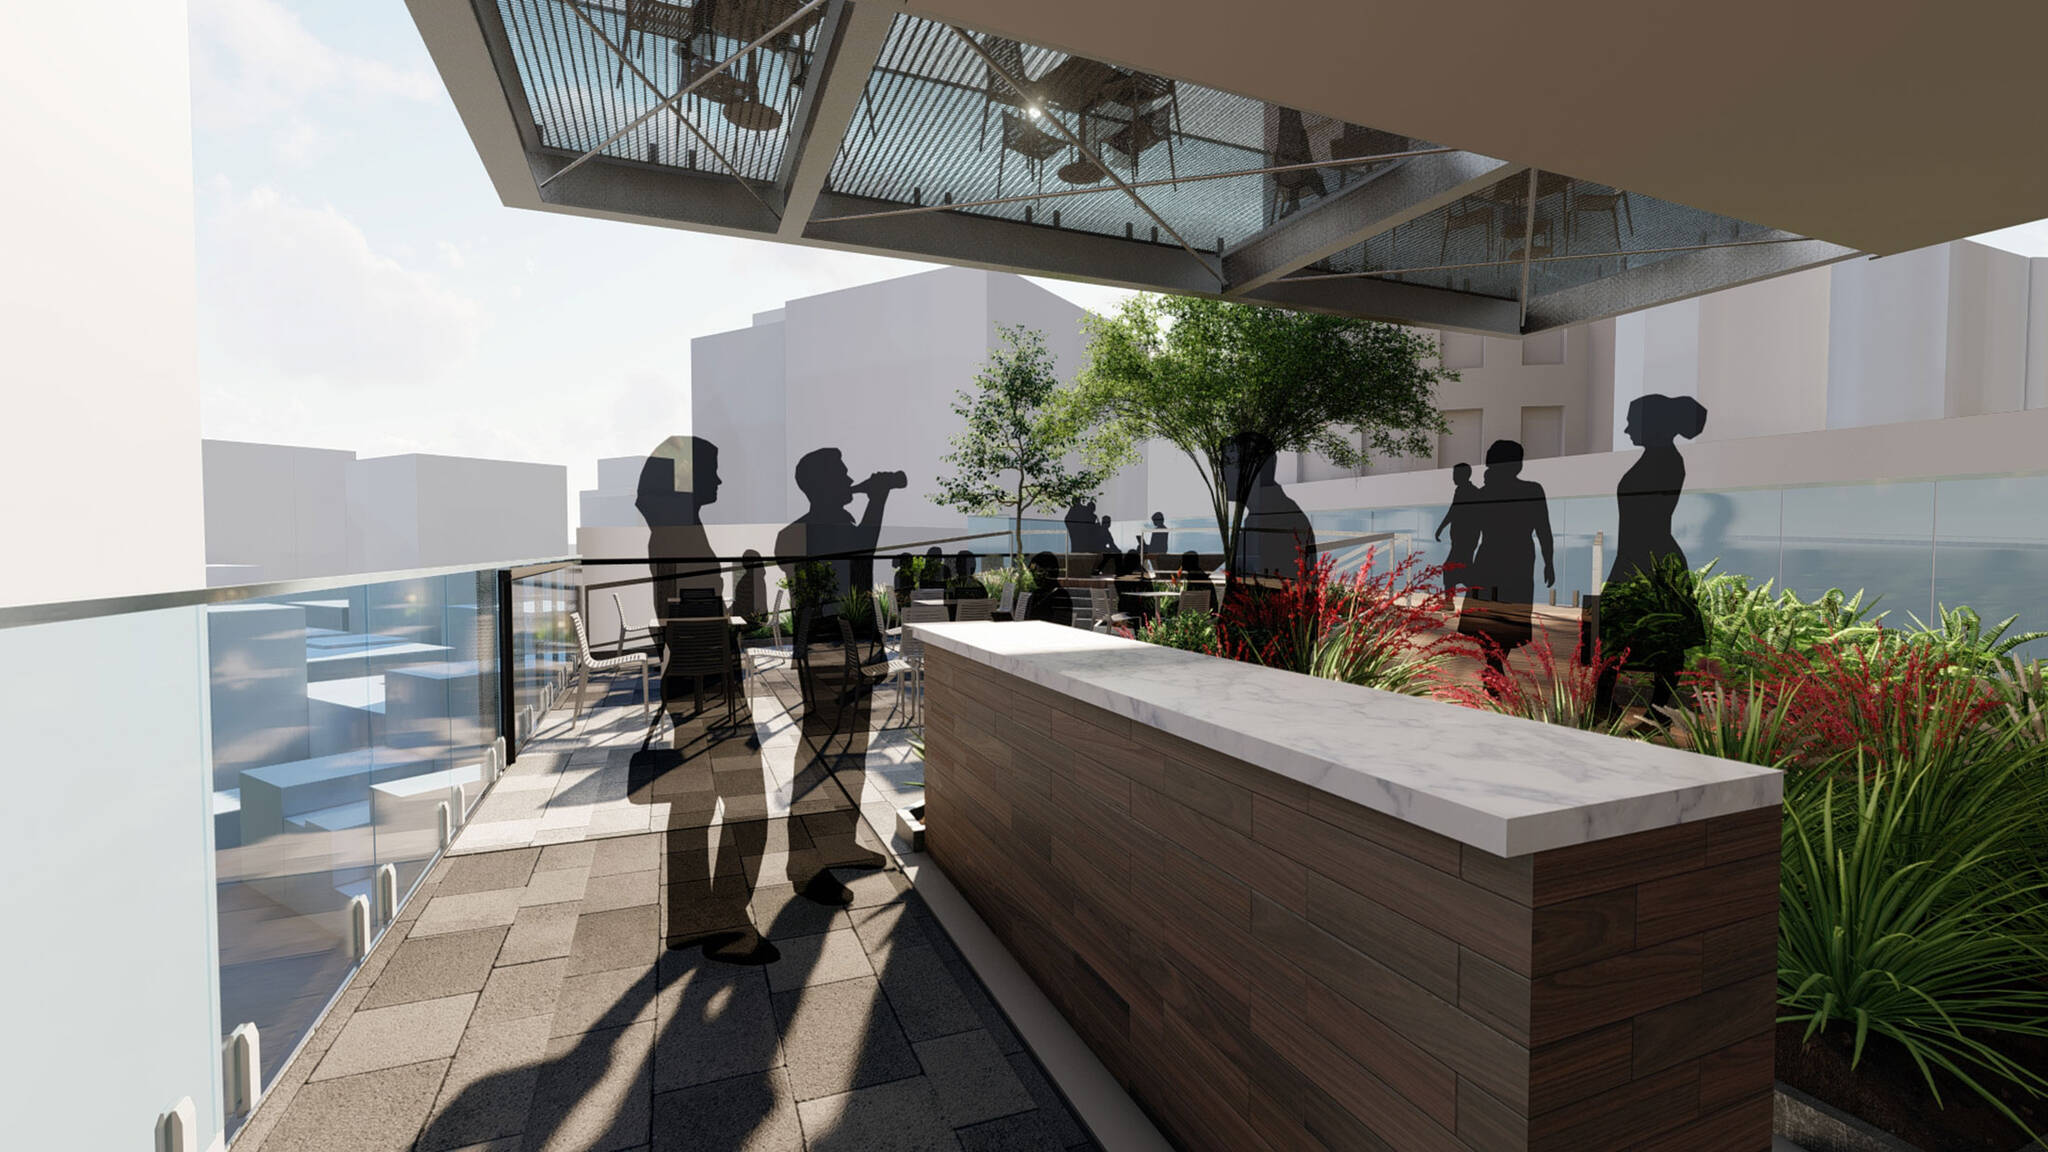 Bar on the terrace of the San Francisco modular project located at 570 Market Street on the Financial District of San Francisco, California designed by the architecture studio Danny Forster & Architecture